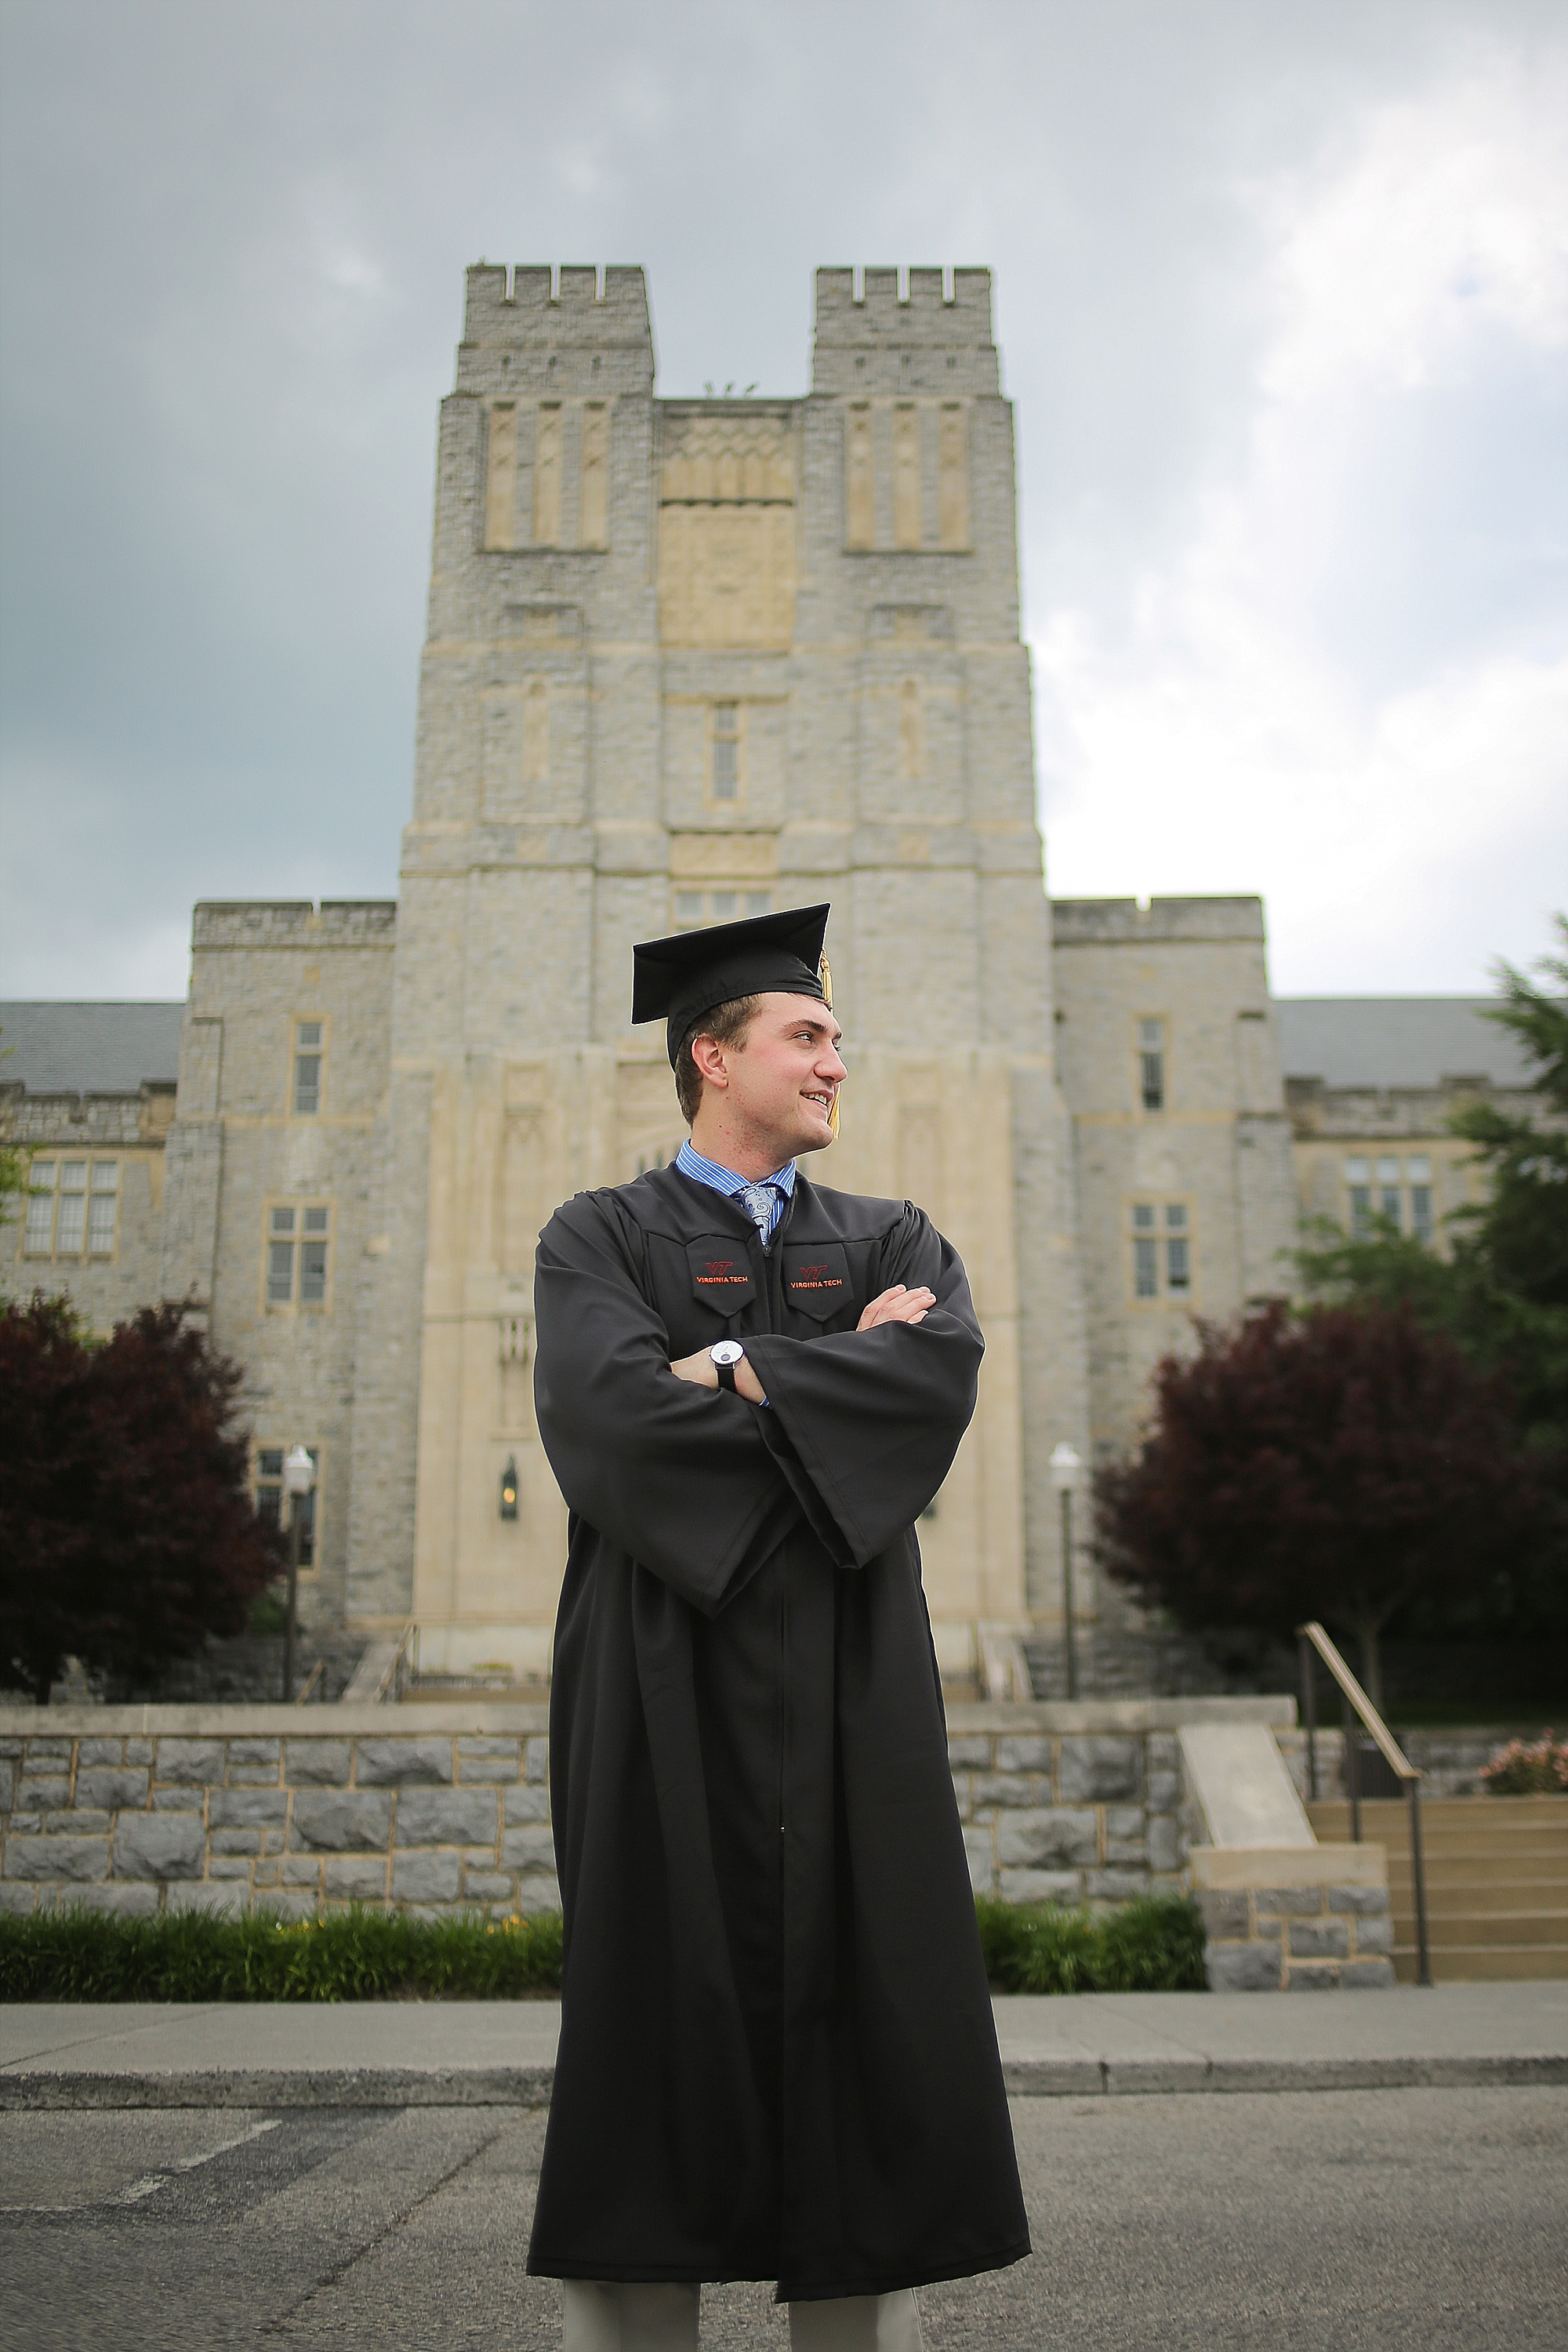 Cameron | Virginia Tech Graduation Portrait Photographer, Holly Cromer